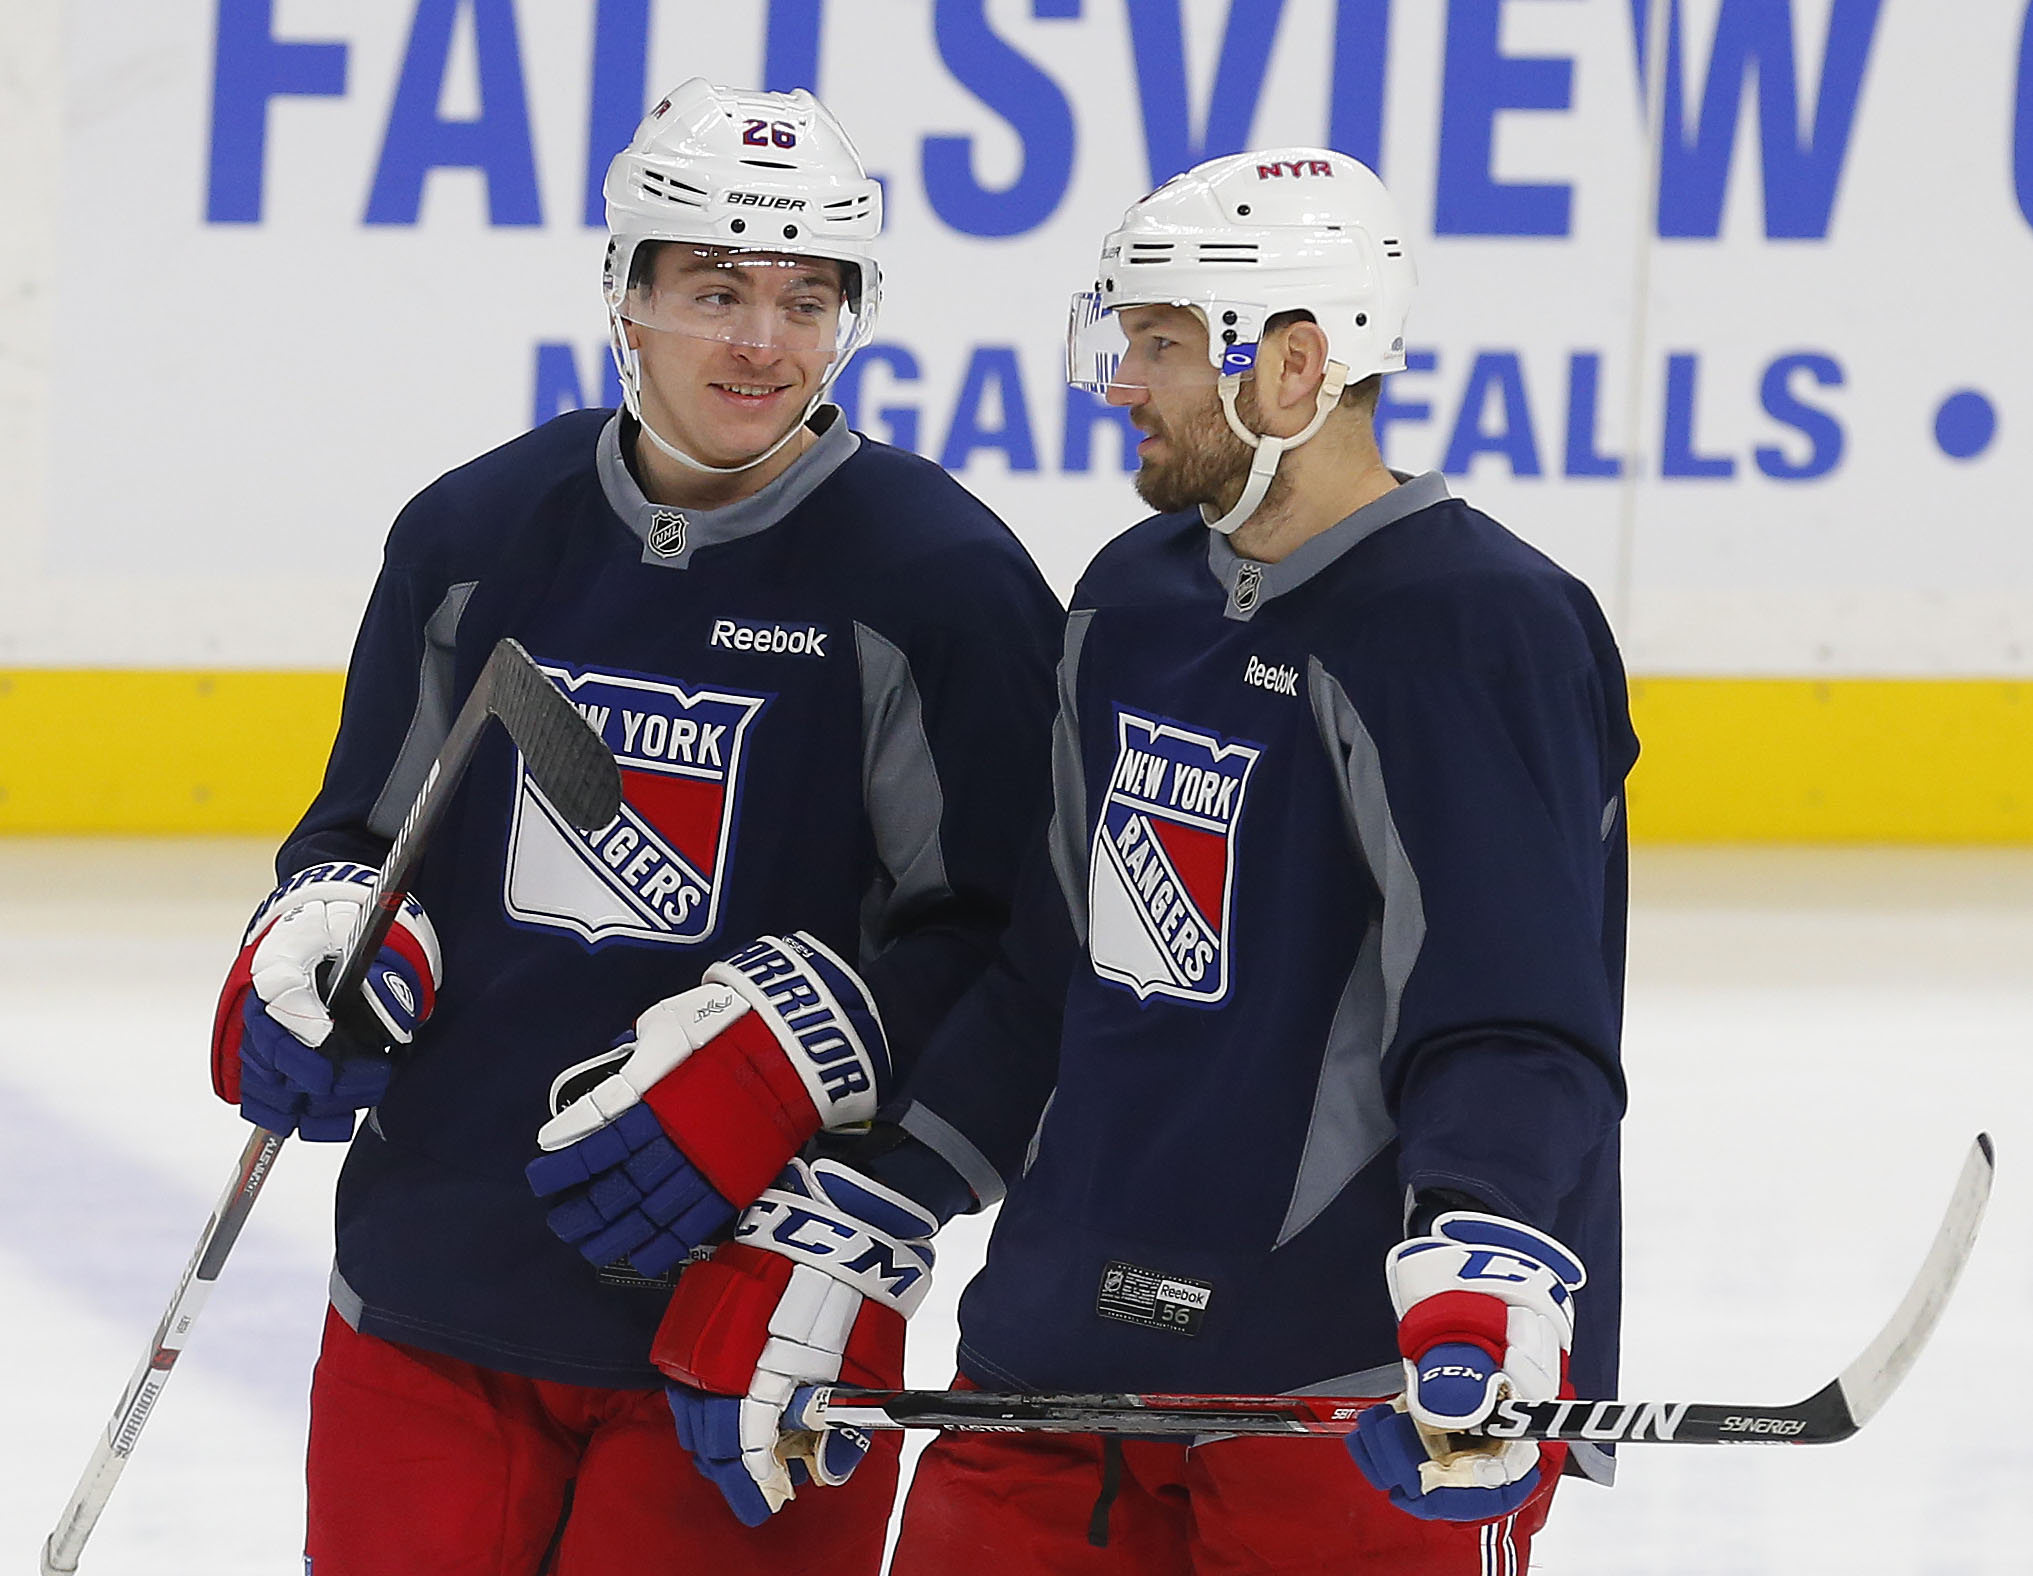 New York Rangers forward Jimmy Vesey, left, talks with teammate Rick Nash during the morning skate at the KeyBank Center. (Mark Mulville/The Buffalo News)